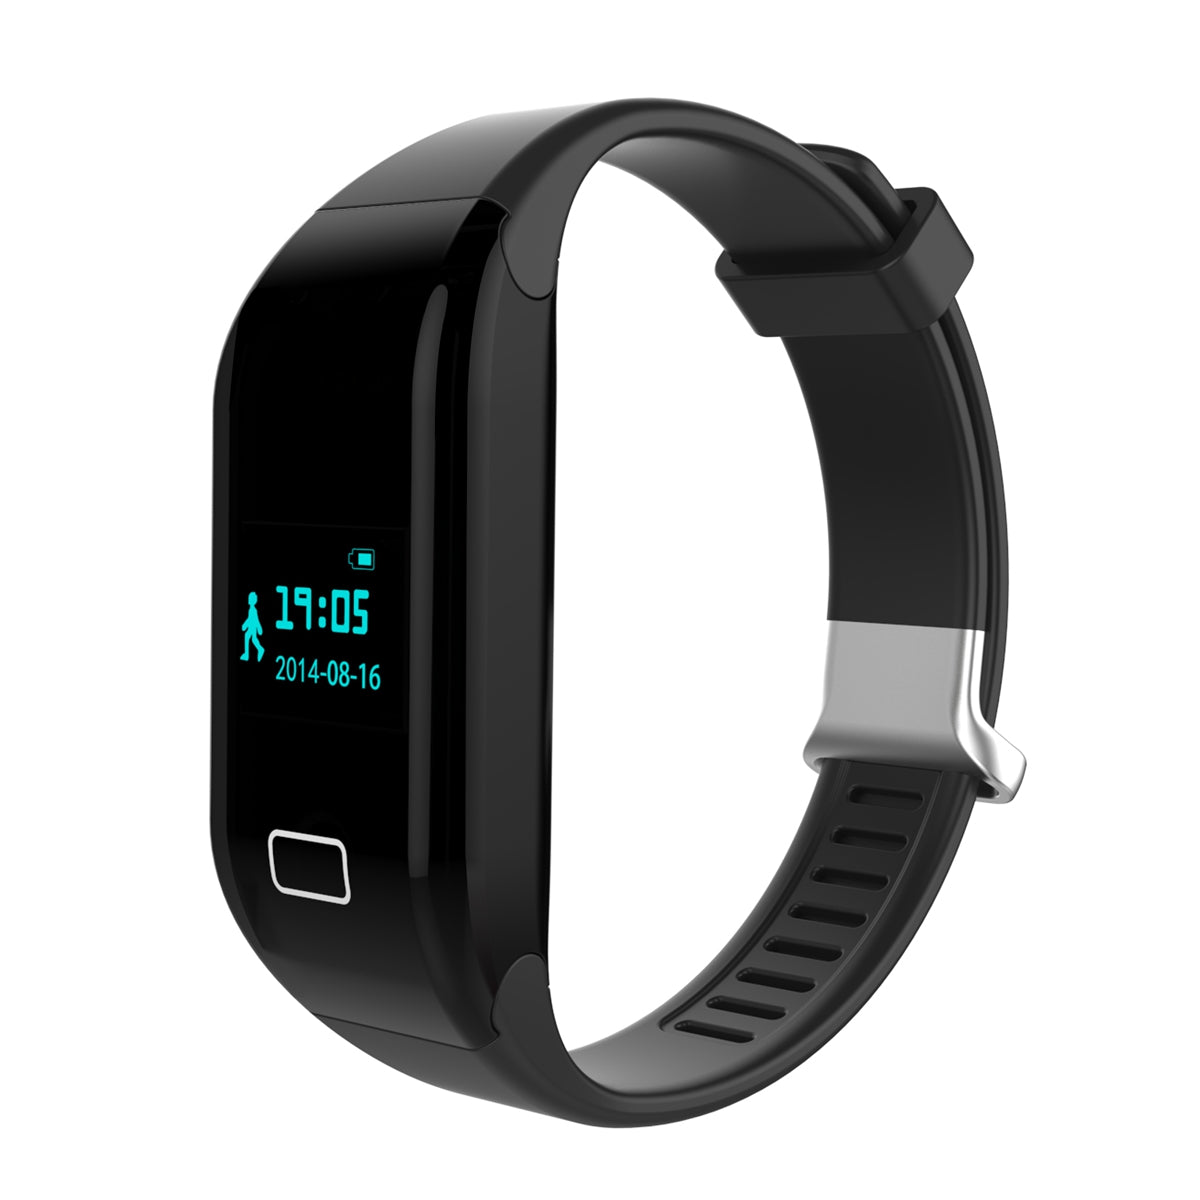 B3 Bluetooth 4.0 Smart Wristband Watch with Three-axis Accelerometer